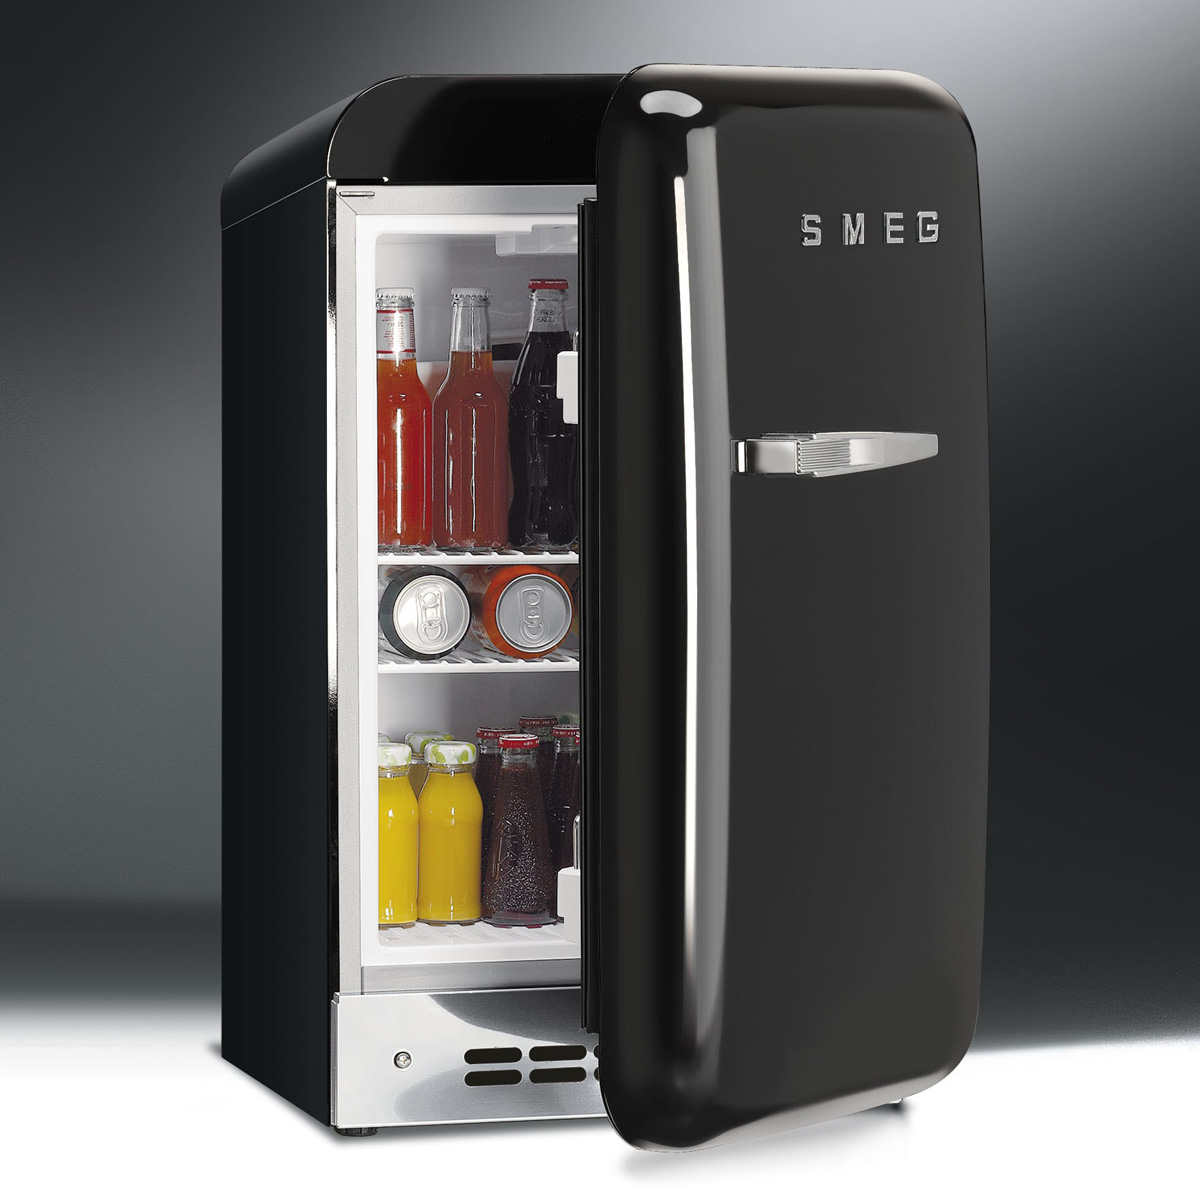 smeg 39 50s style mini refrigerator. Black Bedroom Furniture Sets. Home Design Ideas